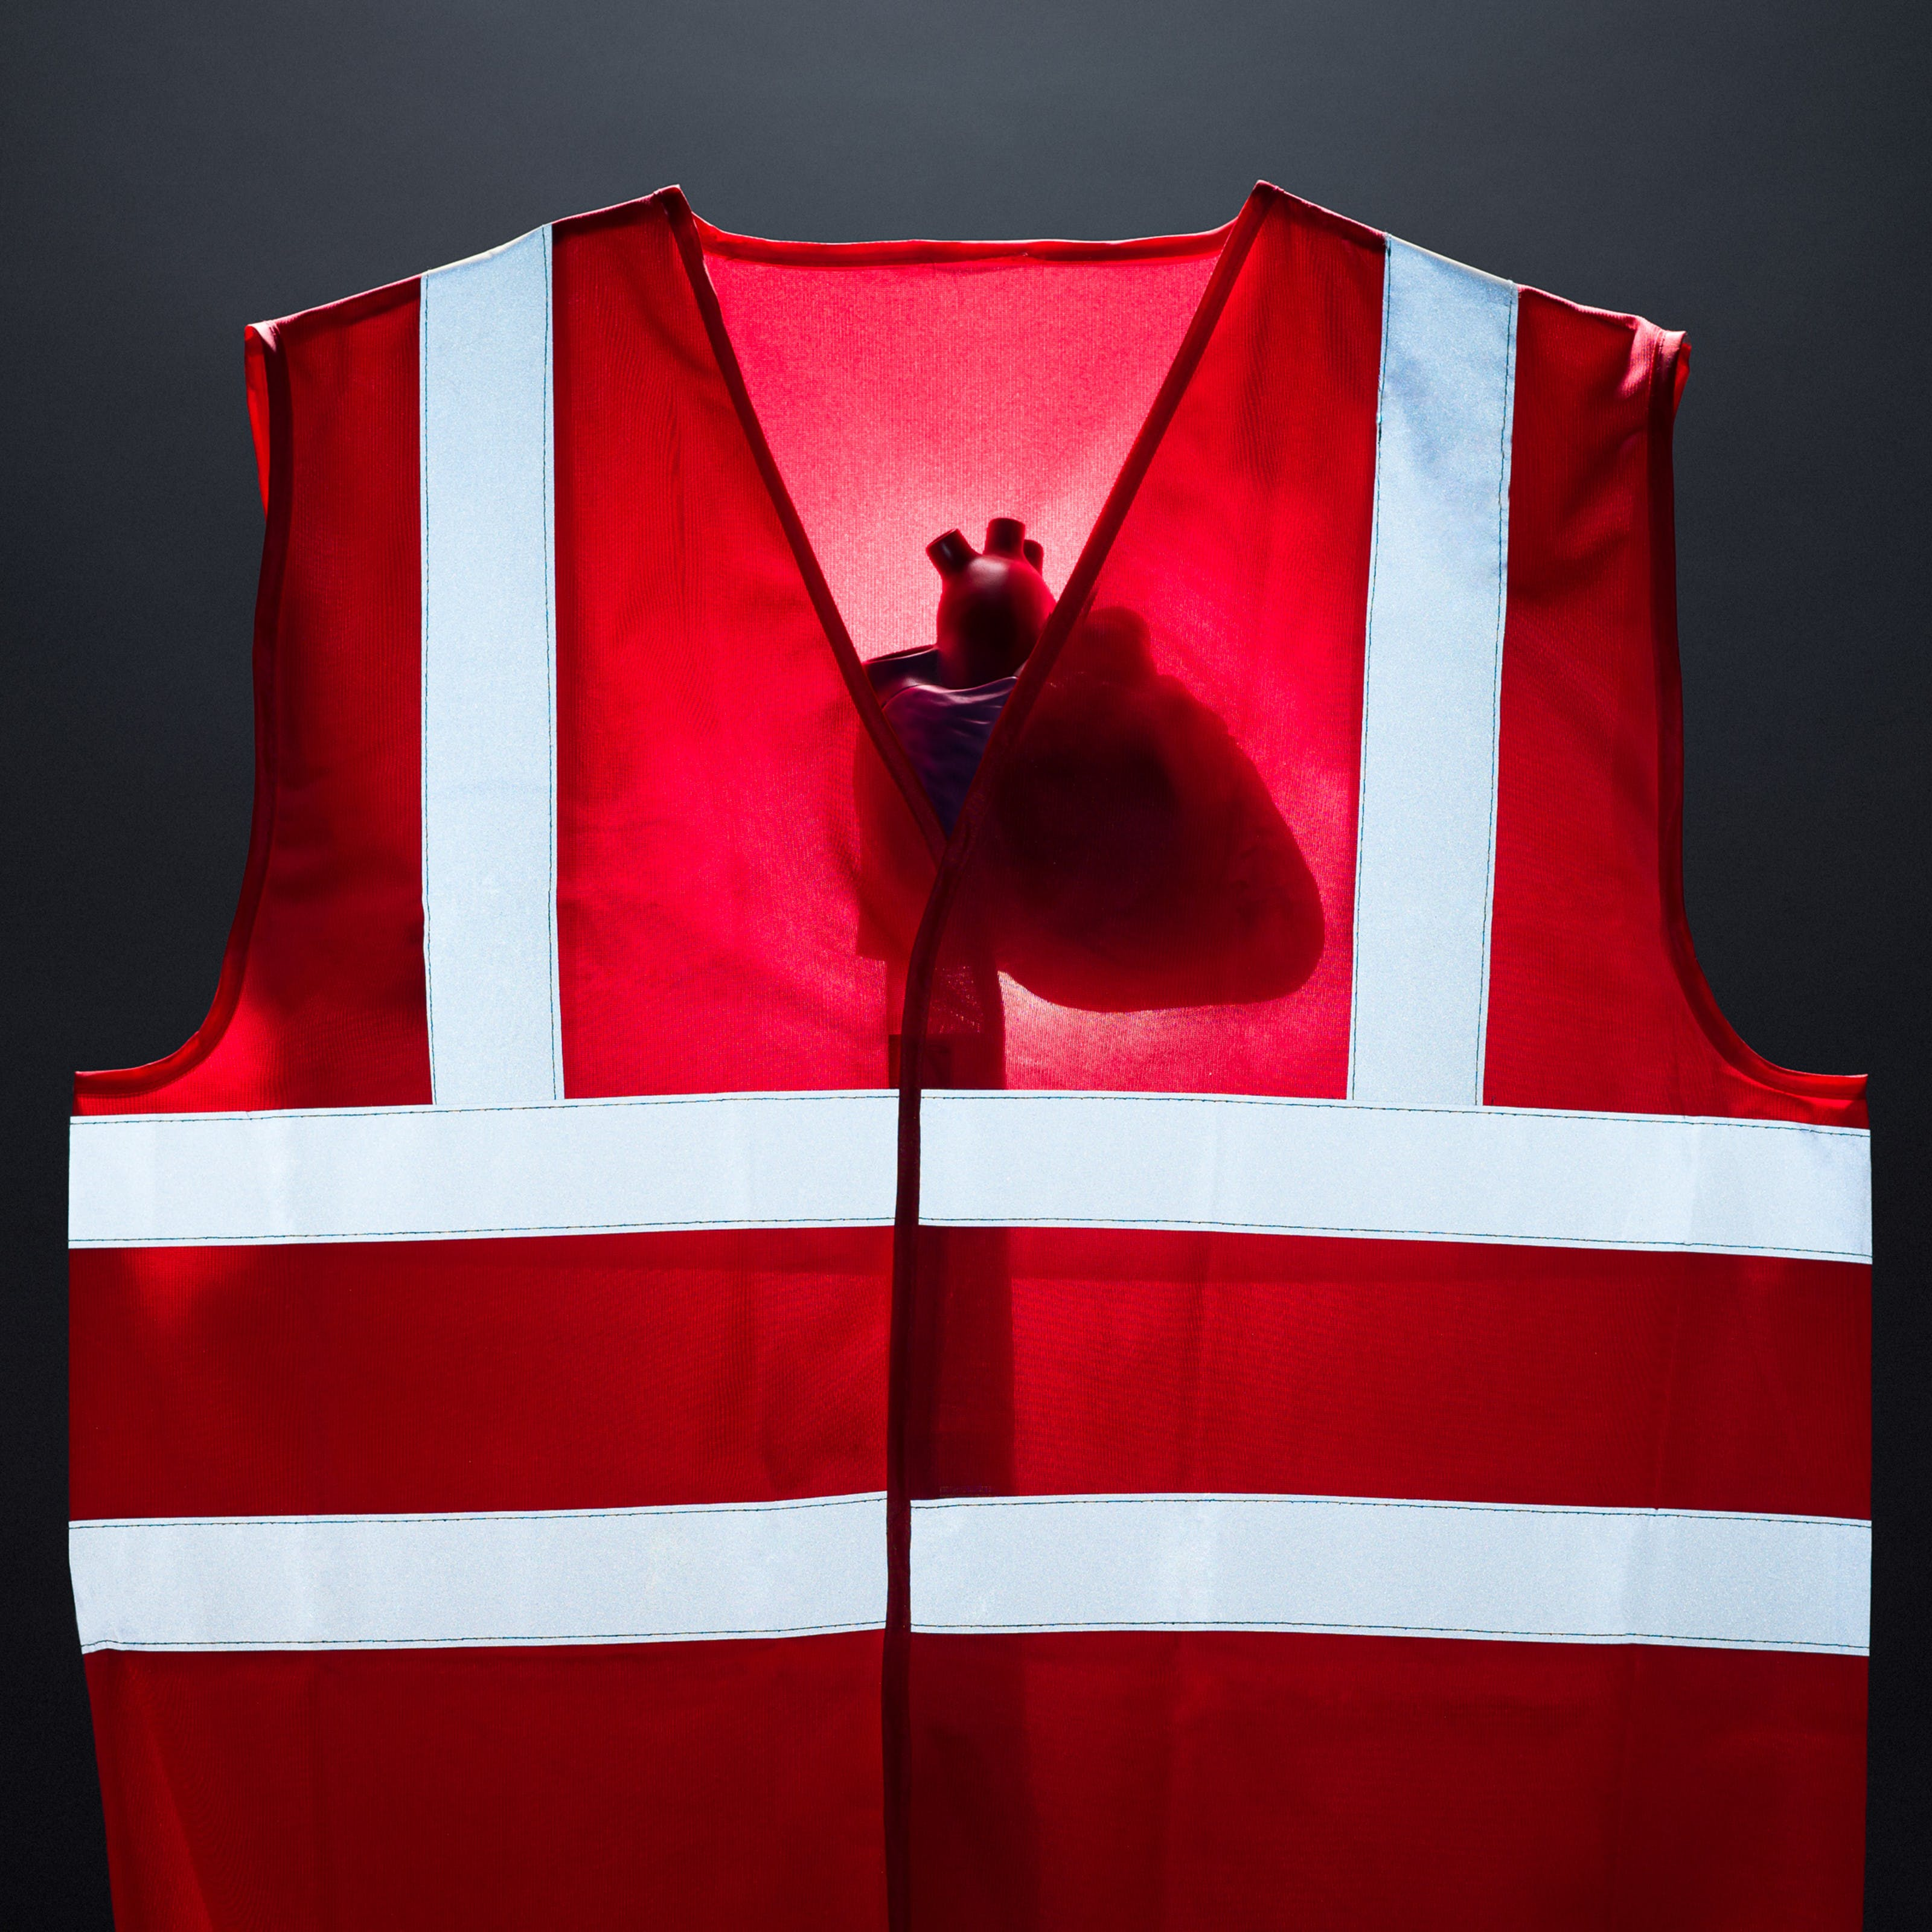 Photograph of a bright red high visibility vest against a dark grey background. The vest is lit from behind revealing the silhouette of a model of a human heart. The reflective strips on the front of the vest are bright with white light.